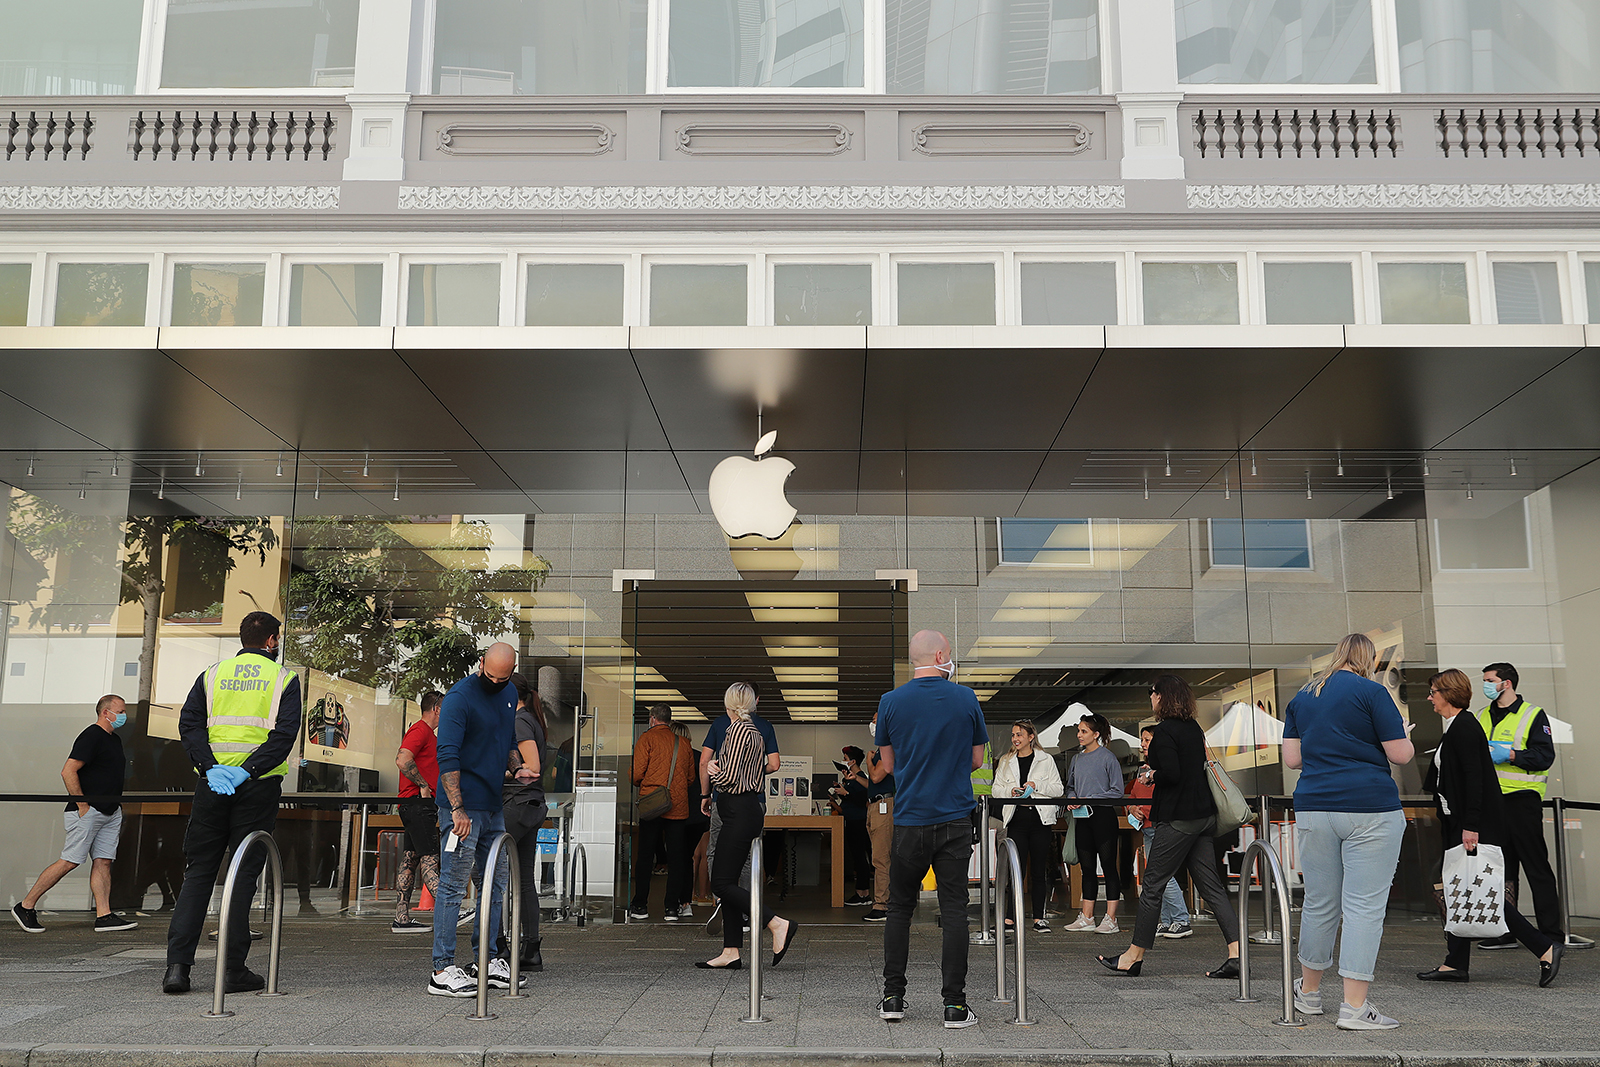 Apple staff ask health questions of people entering the Apple store in Perth, Australia, on Monday, May 18.